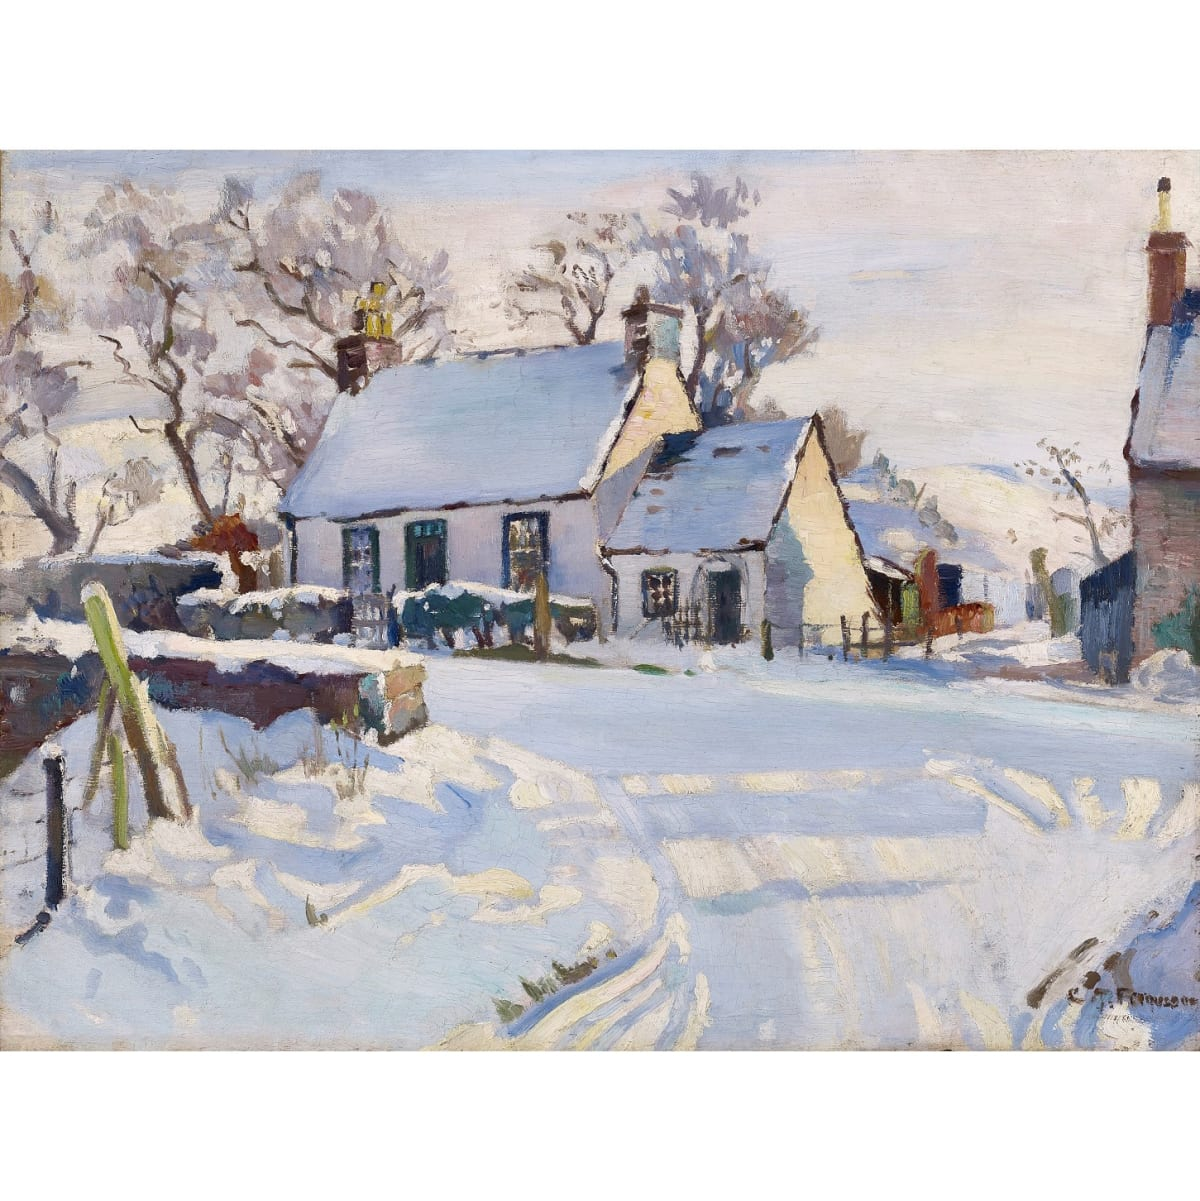 Christian Jane Fergusson Sunlit Snow signed; signed and titled on artist's labels verso oil on panel 18 x 24 inches